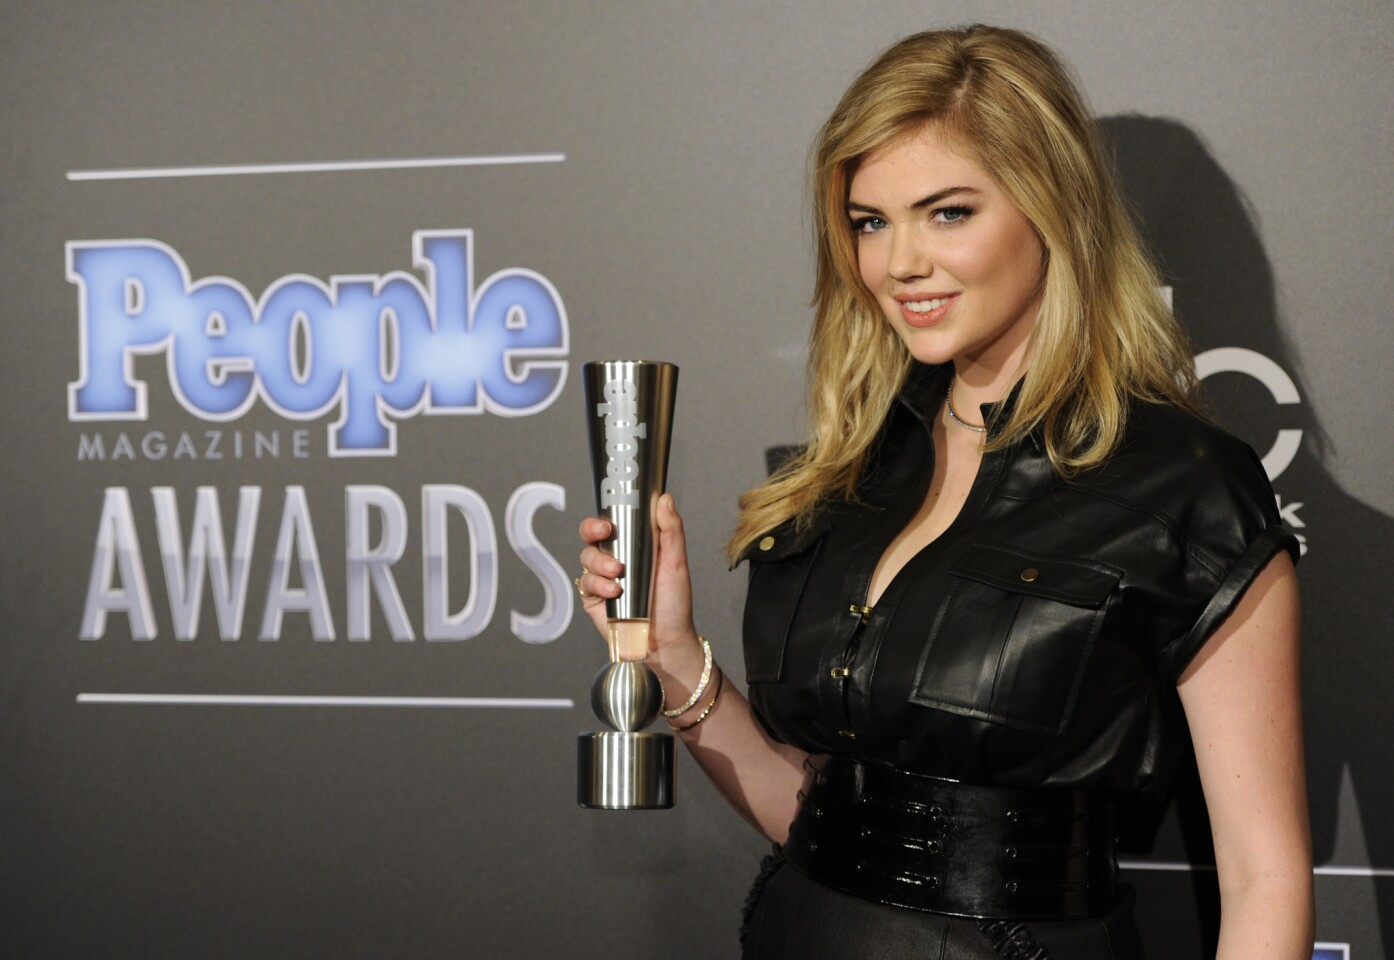 Kate Upton poses with the award for Sexiest Woman at the People Magazine Awards in Beverly Hills on Dec. 18.